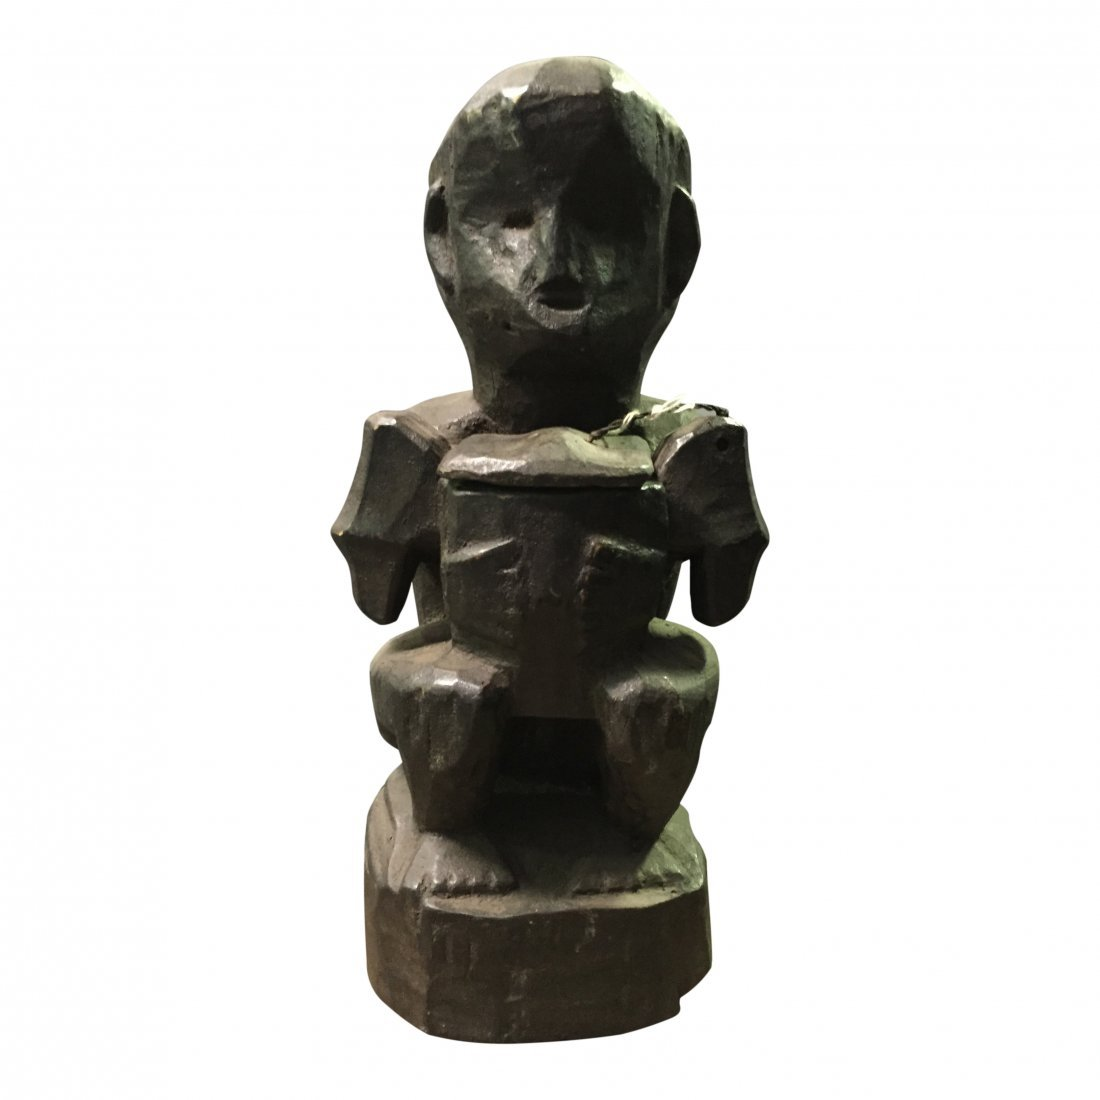 Bulul statue sitting and holding a food container